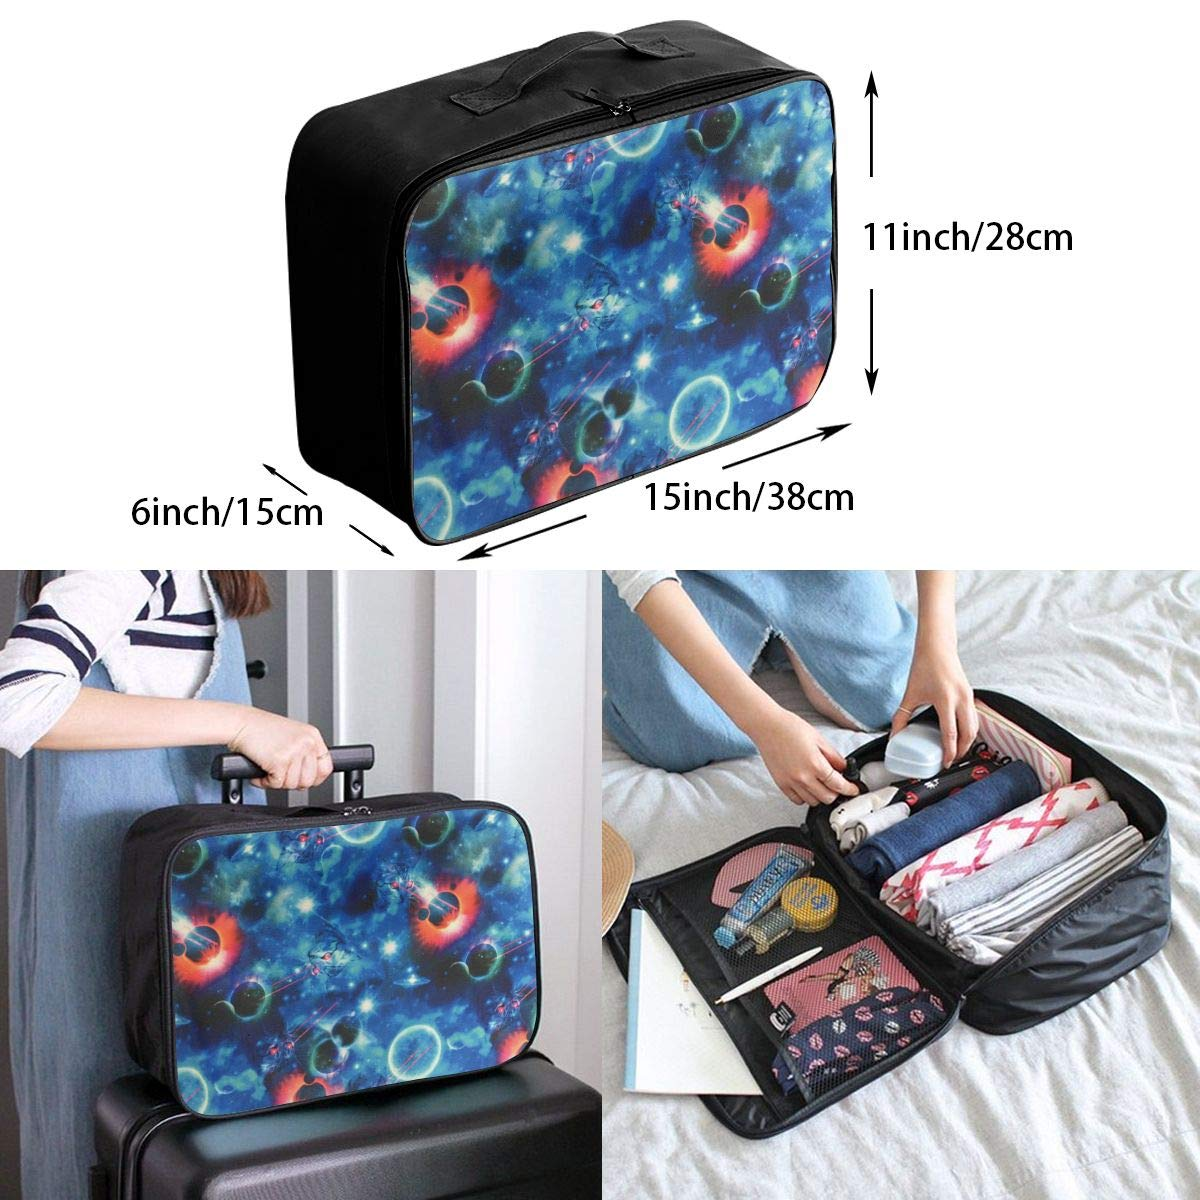 Travel Luggage Duffle Bag Lightweight Portable Handbag Abstract Print Large Capacity Waterproof Foldable Storage Tote